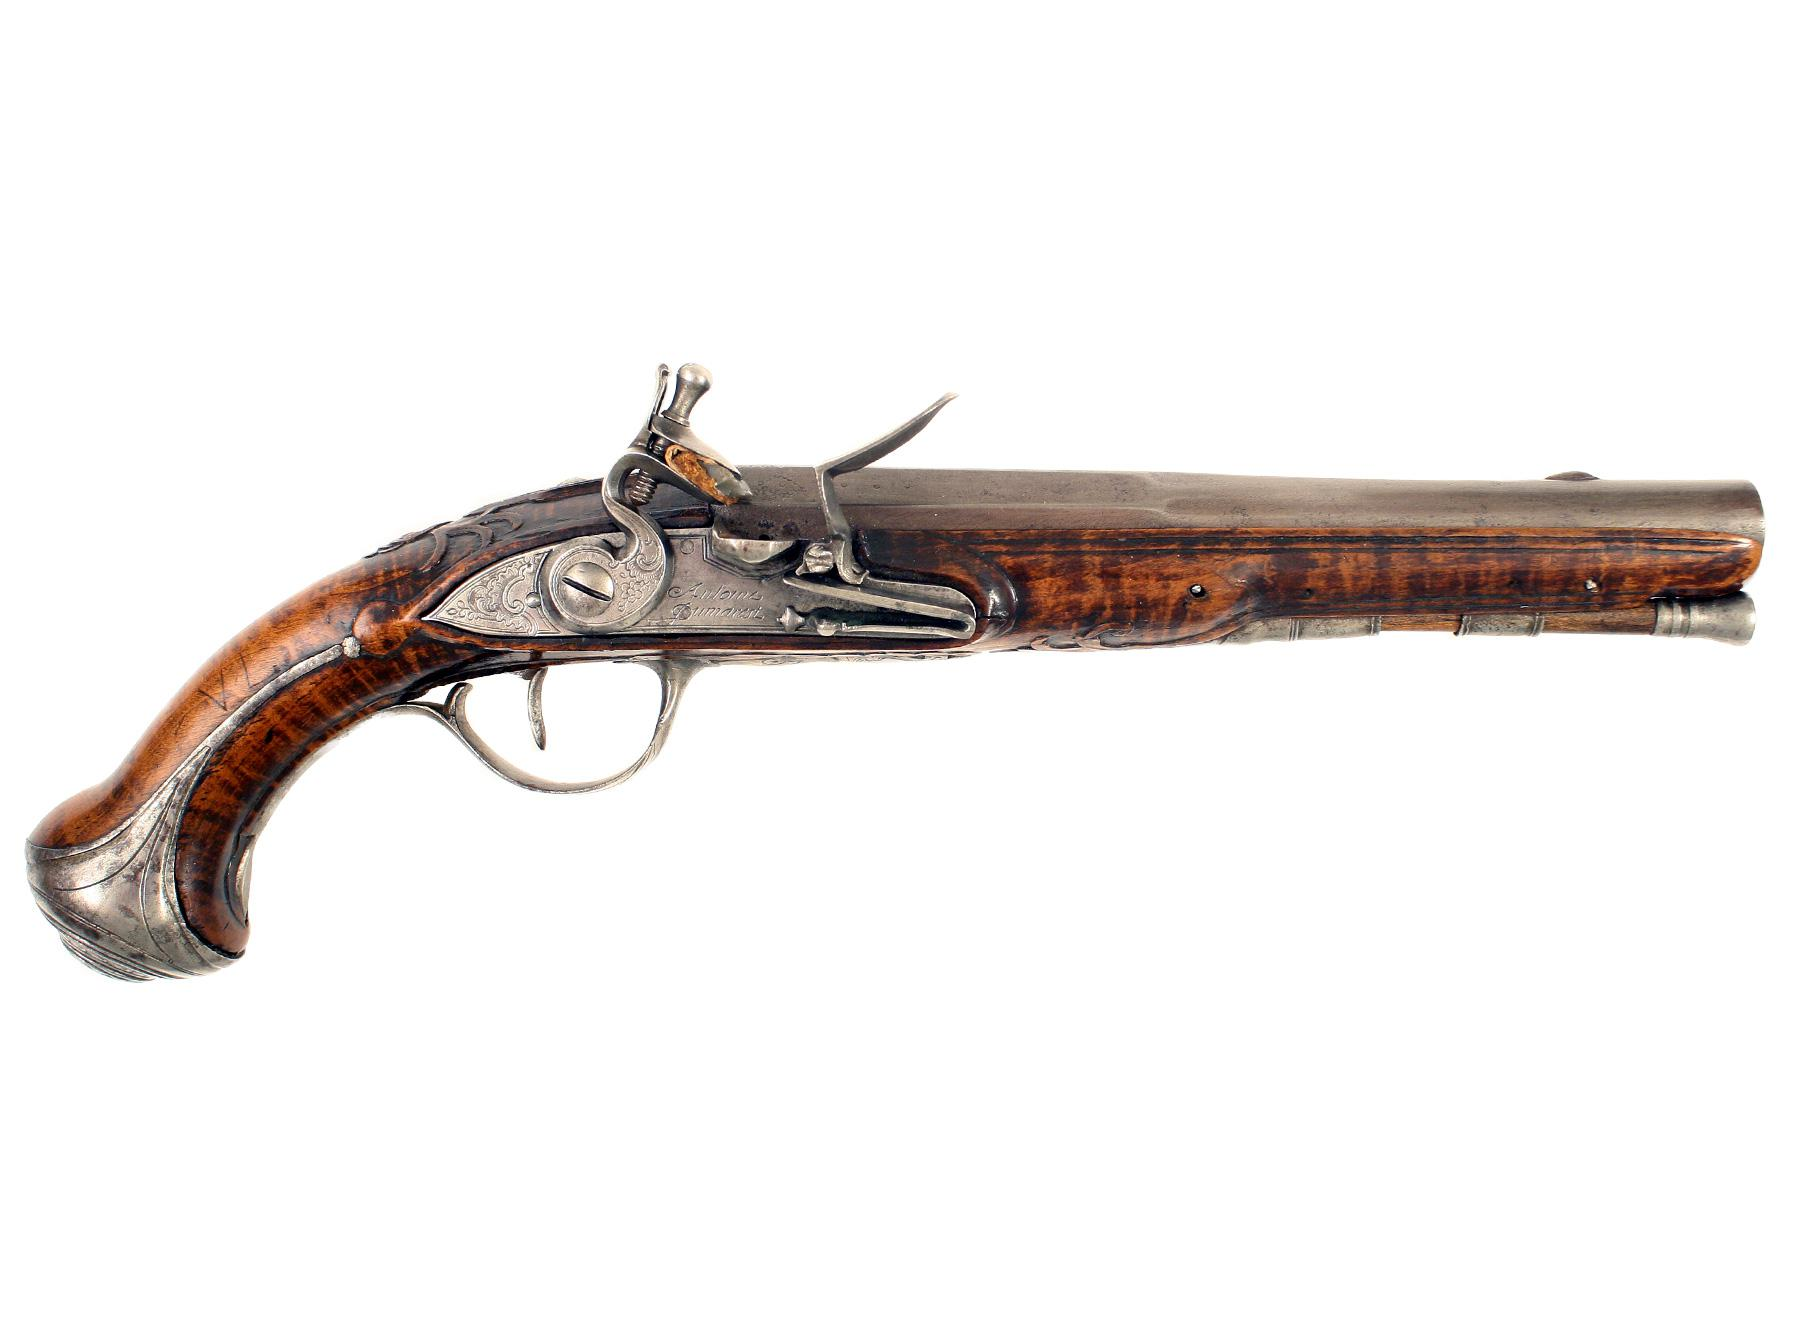 A French Flintlock Pistol